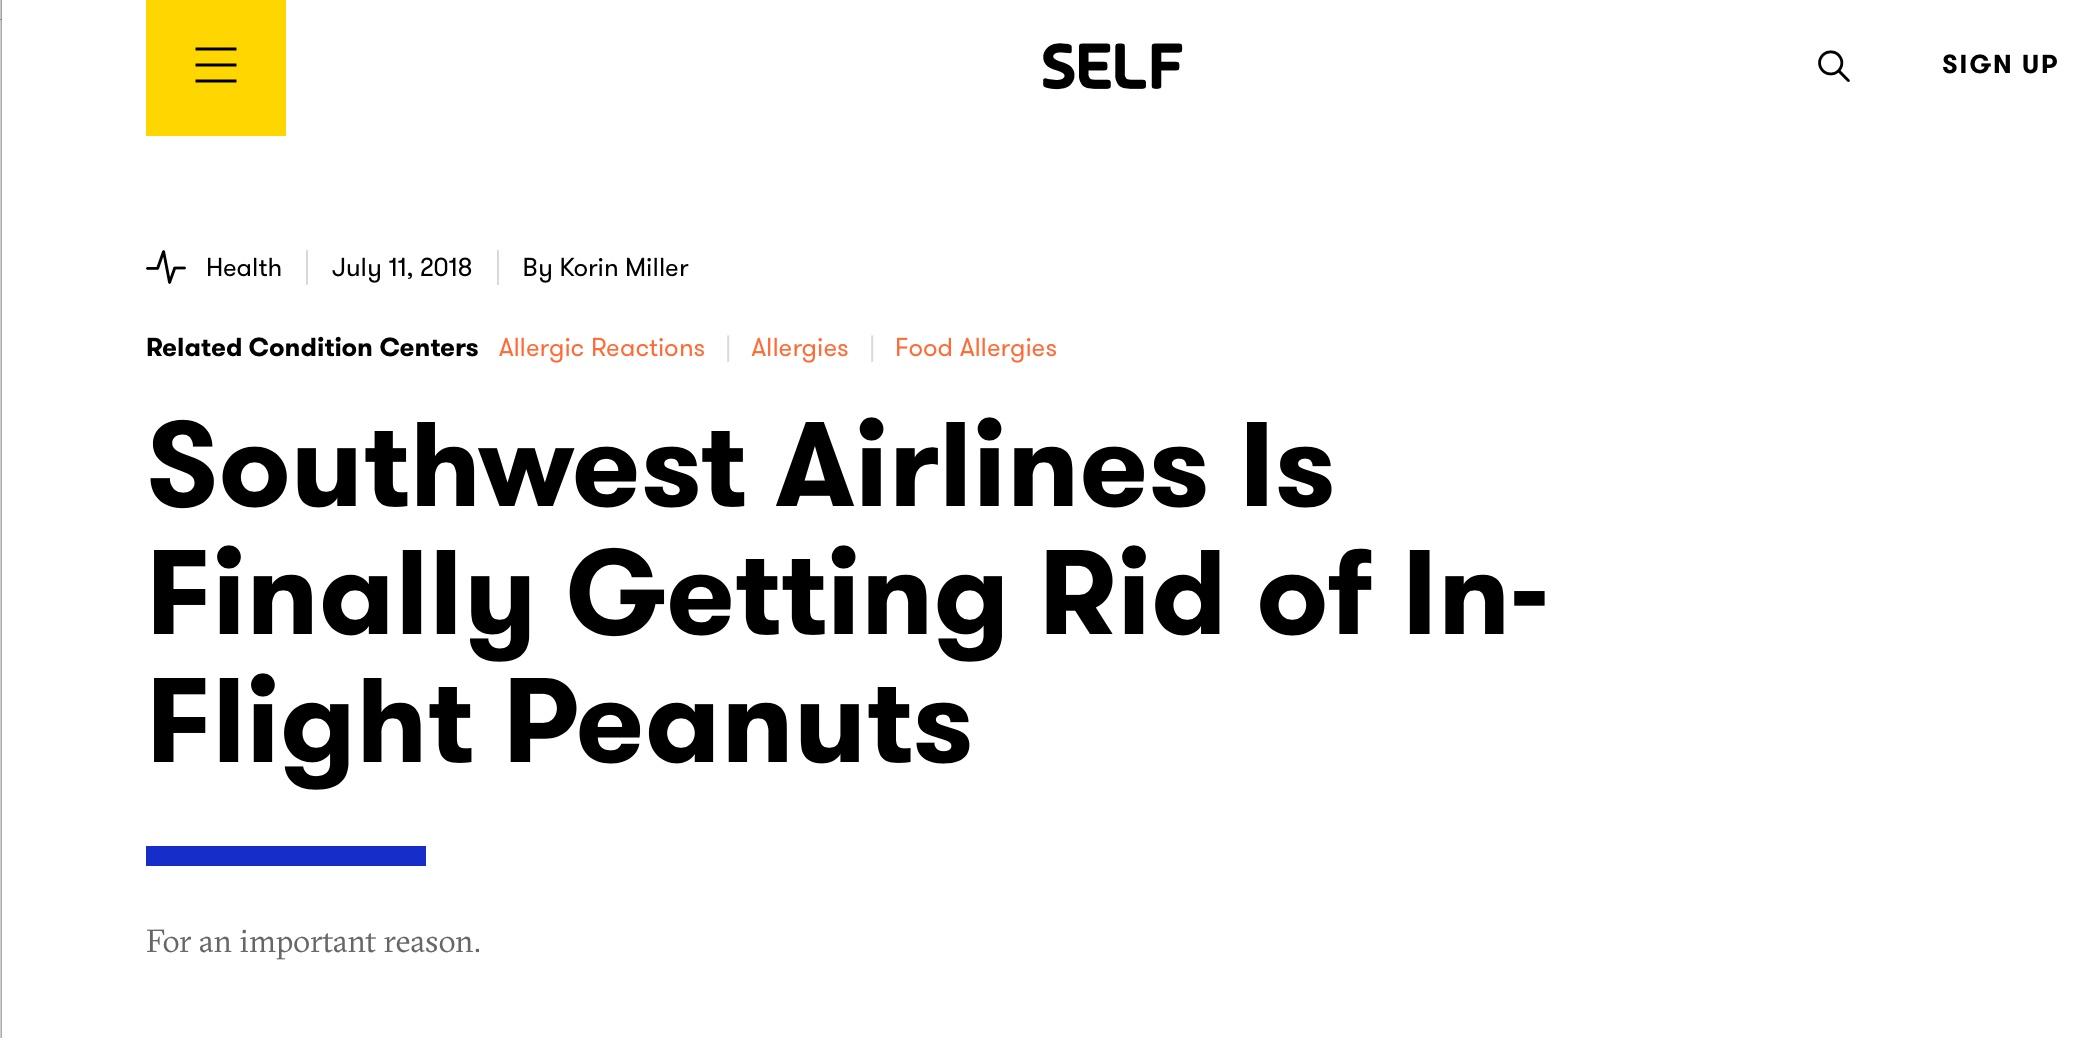 Soutwest Airlines finally rid of peanuts JUL18.jpeg